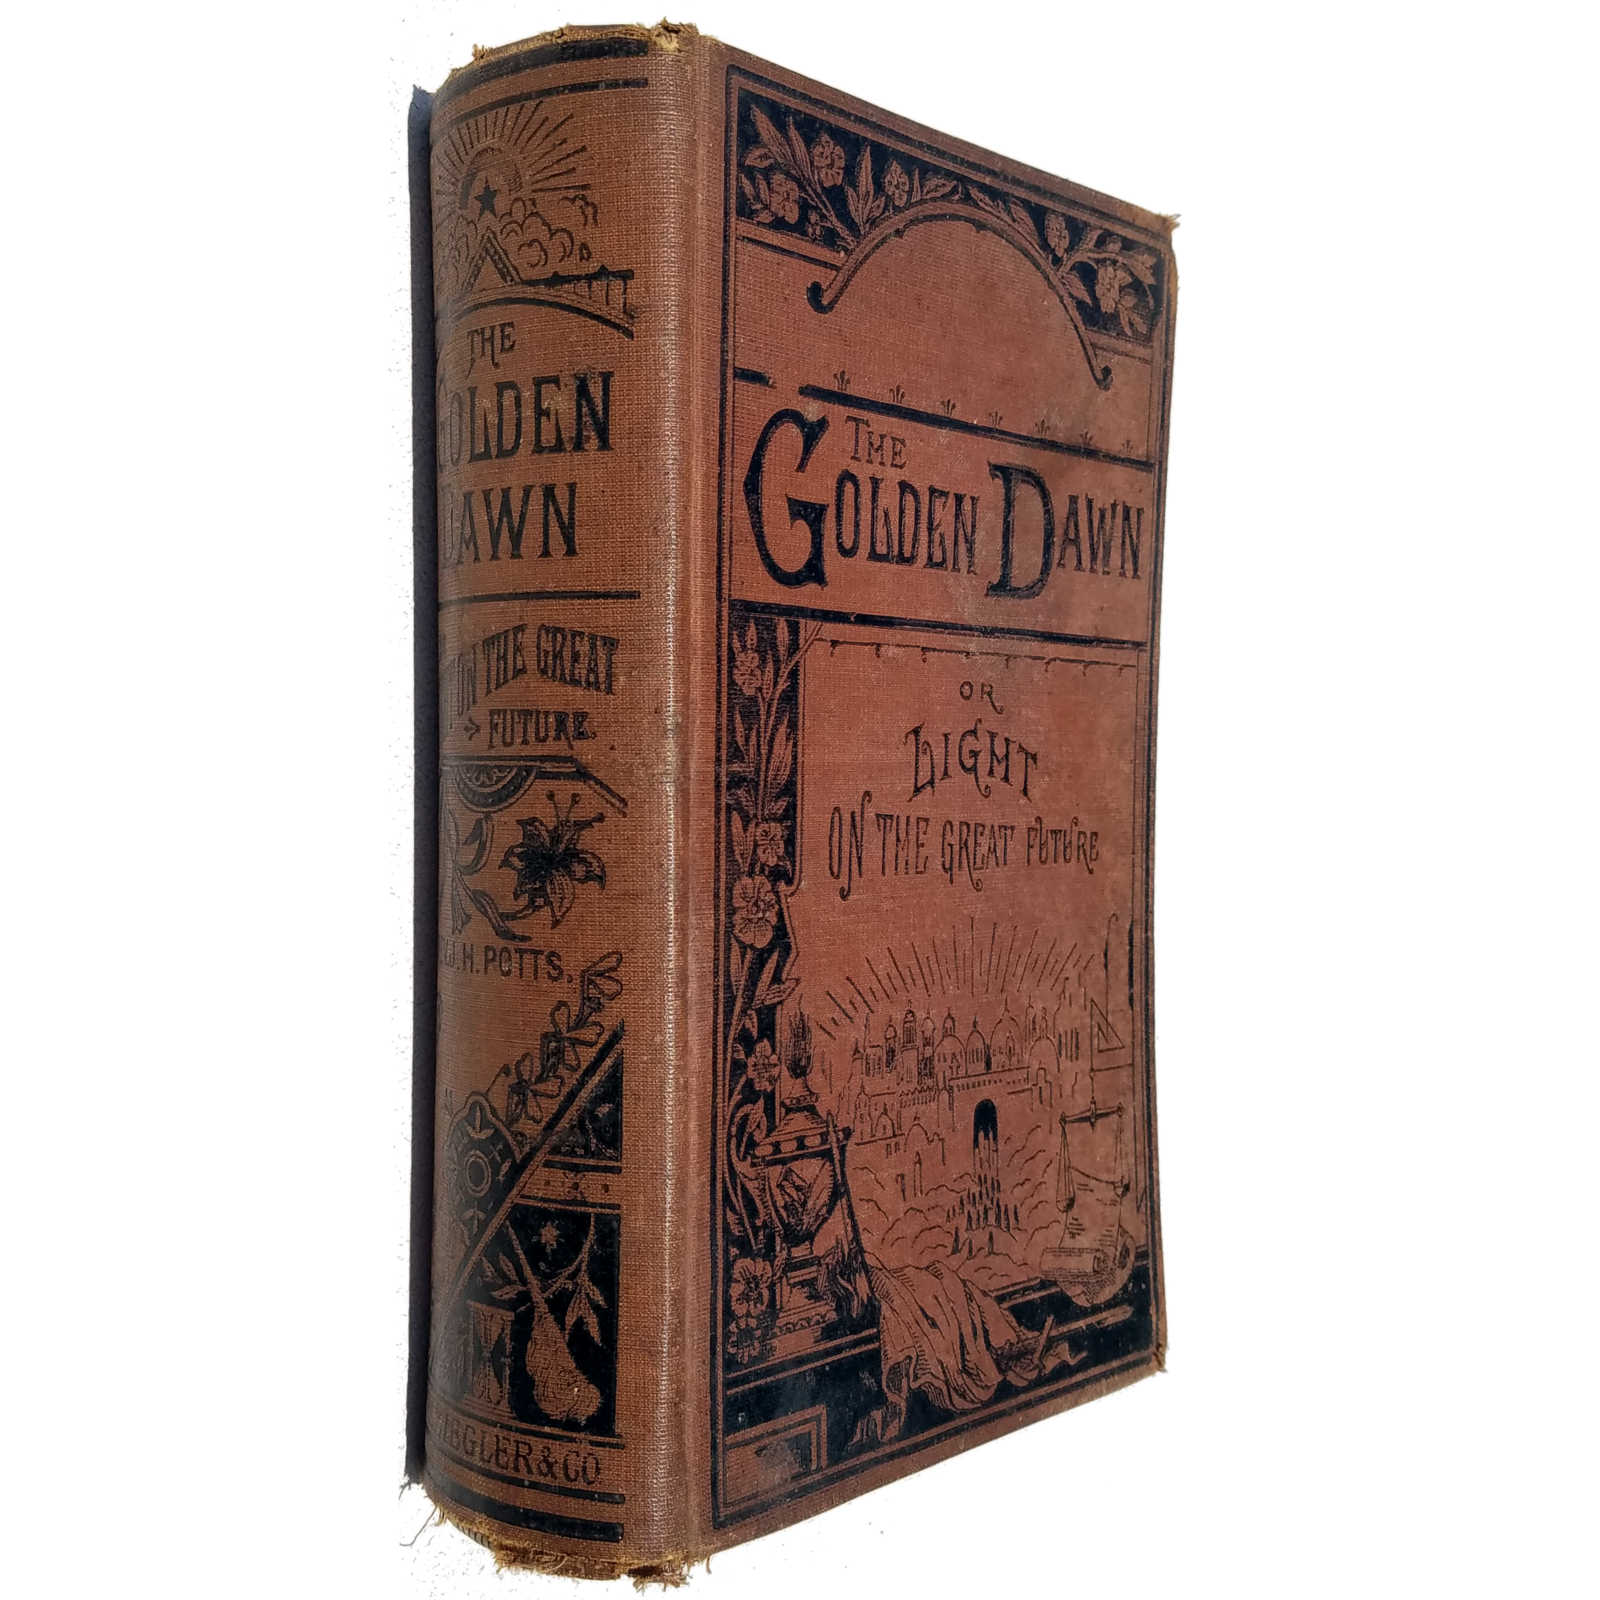 Potts (1884) The Golden Dawn or Light on the Great Future